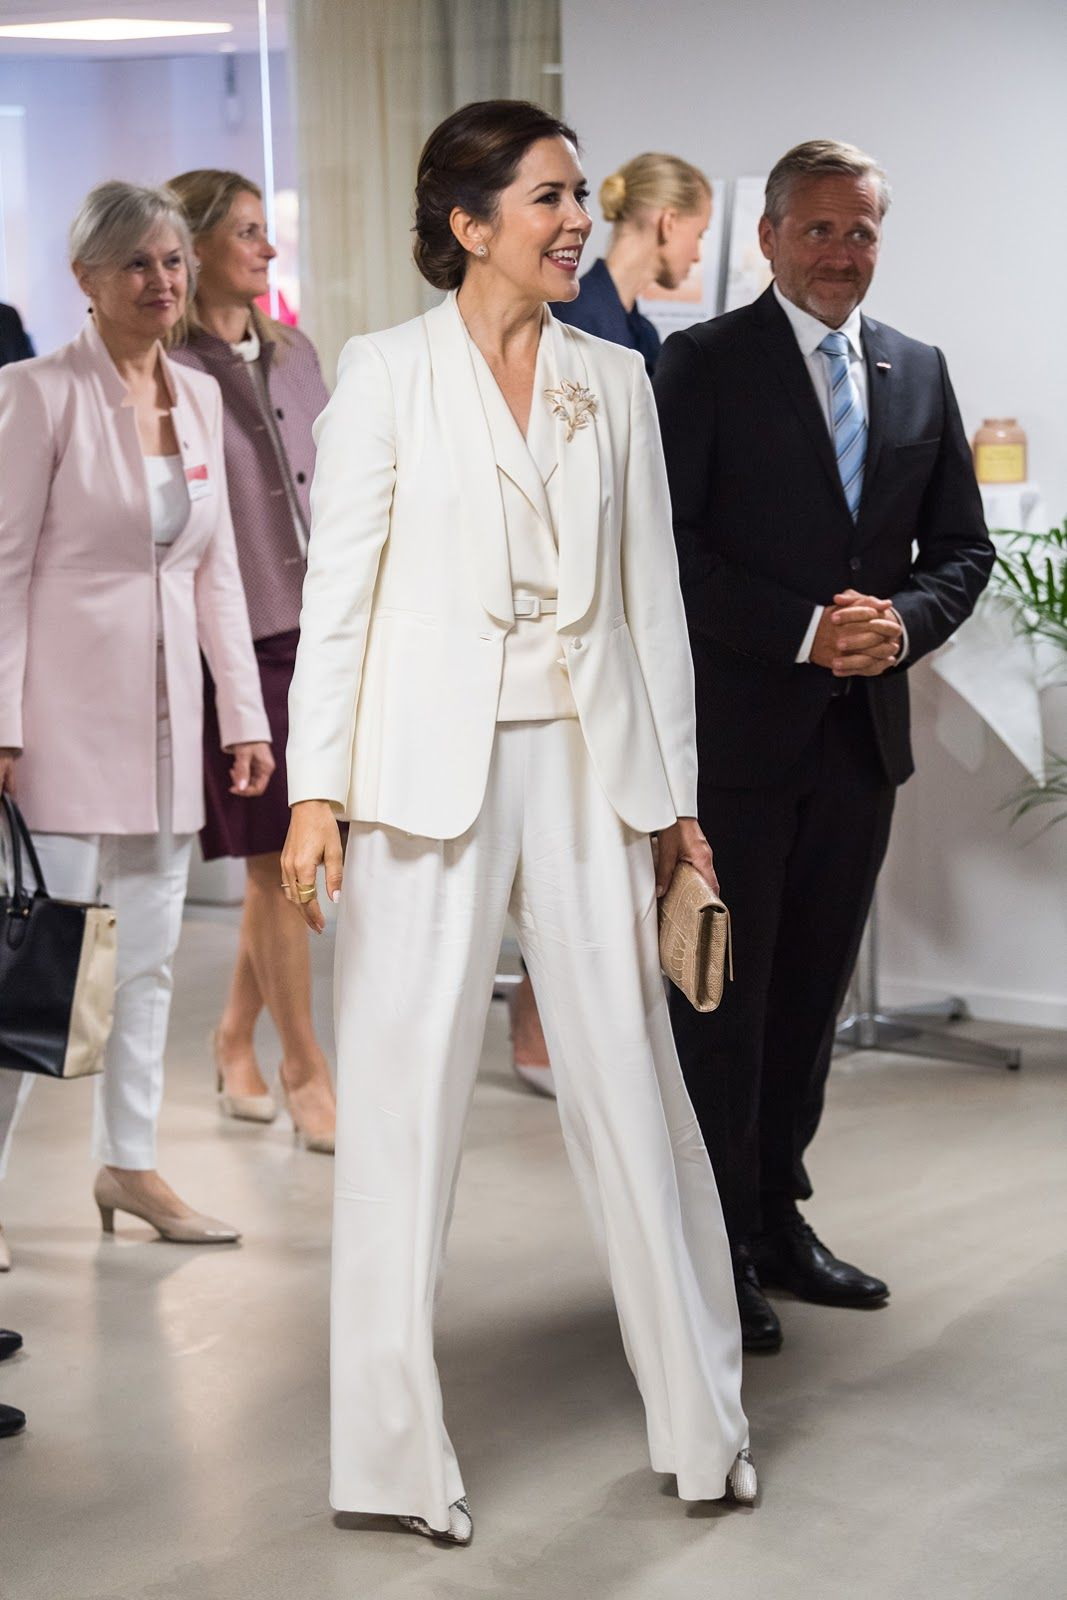 29 may 2017 - state visit to stockholm  day 1